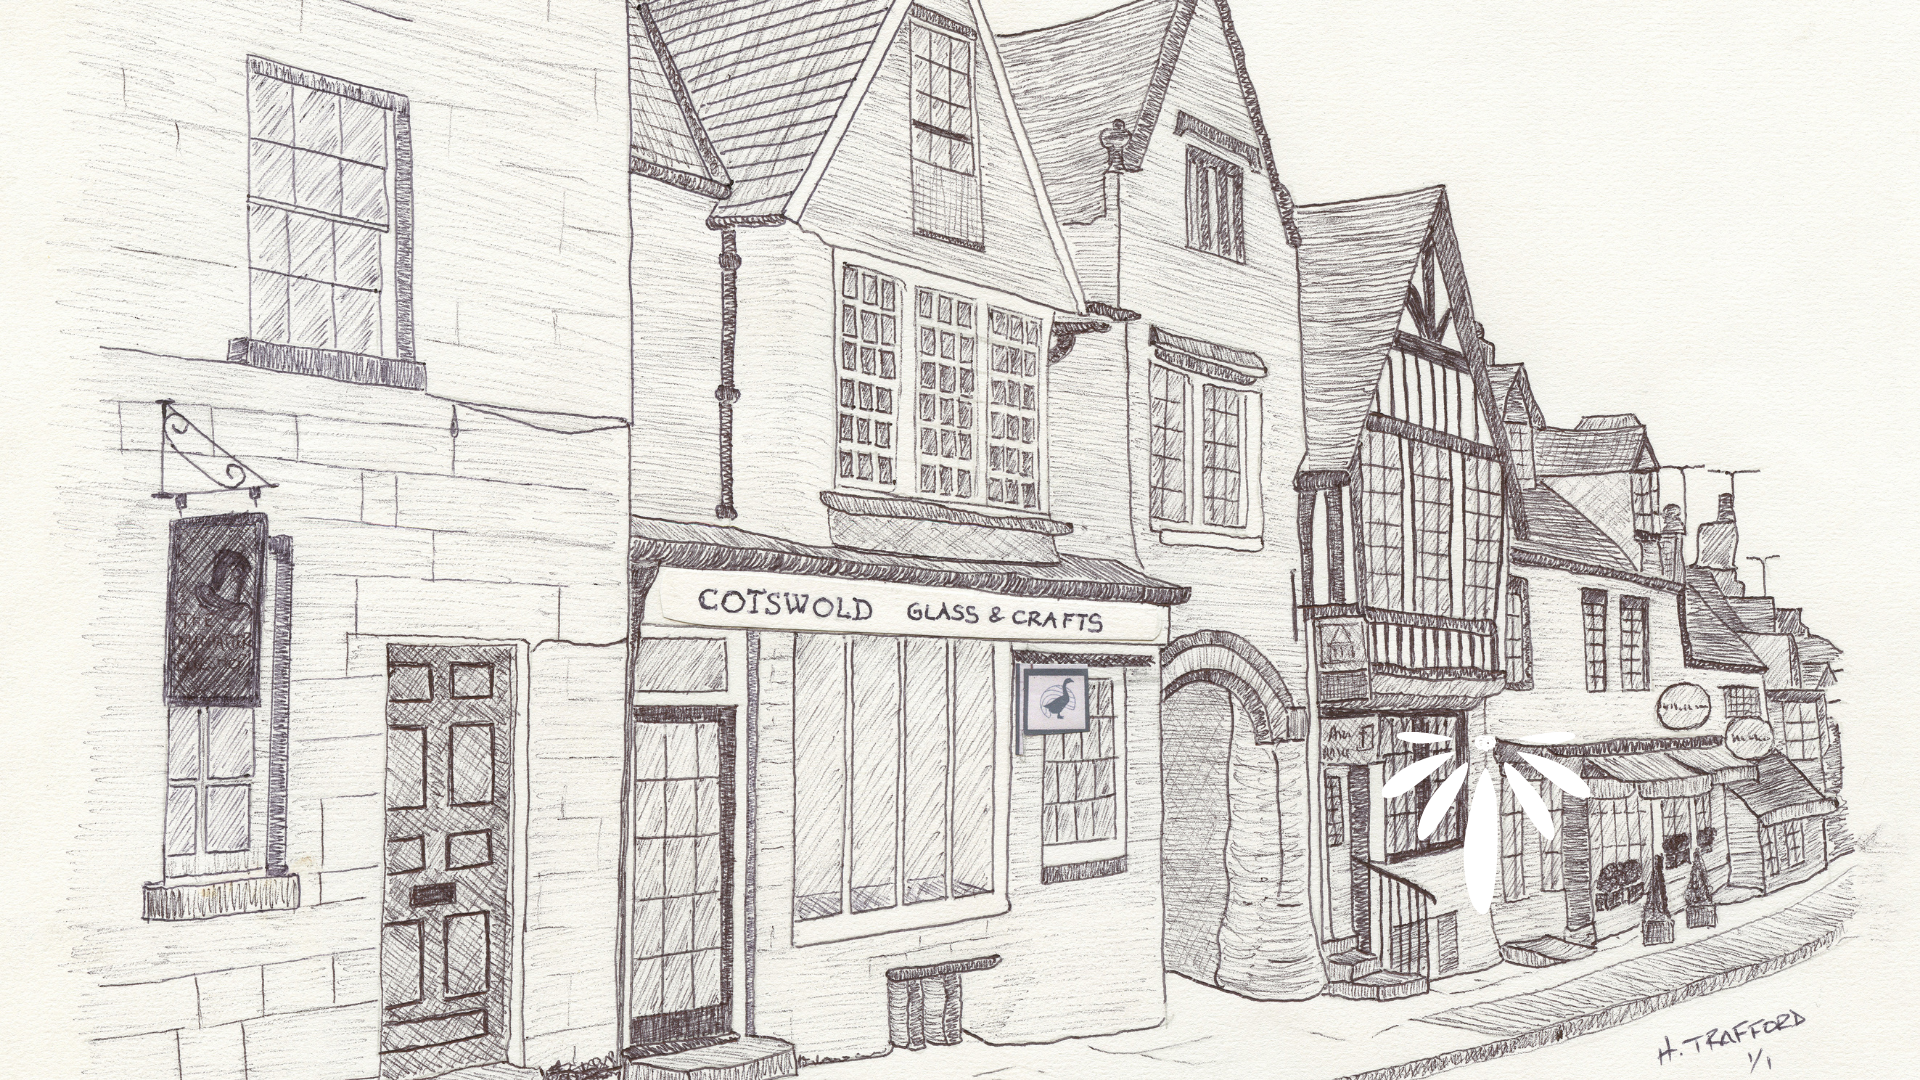 Henry Trafford Handrawn Picture of the shop on Burford Highstreet